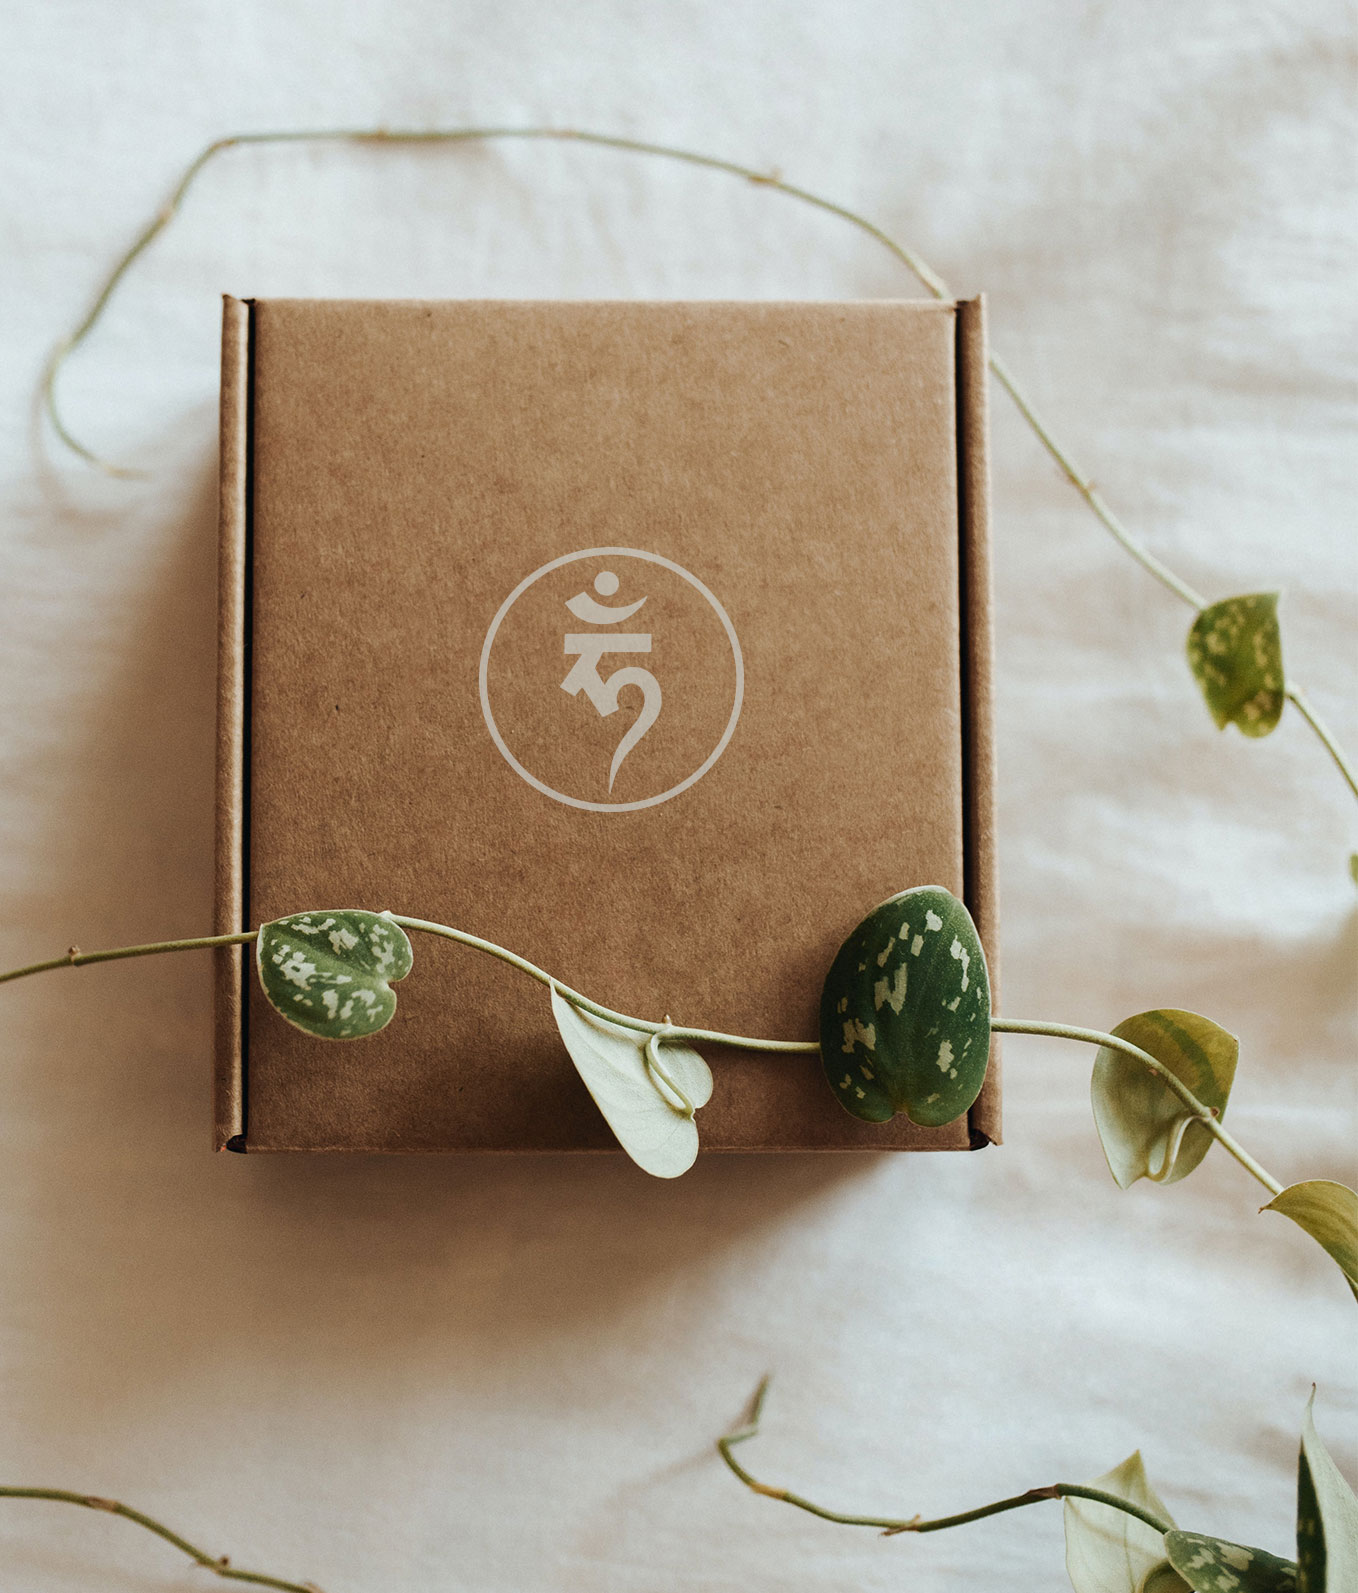 Ethical and sustainable fashion products packaging